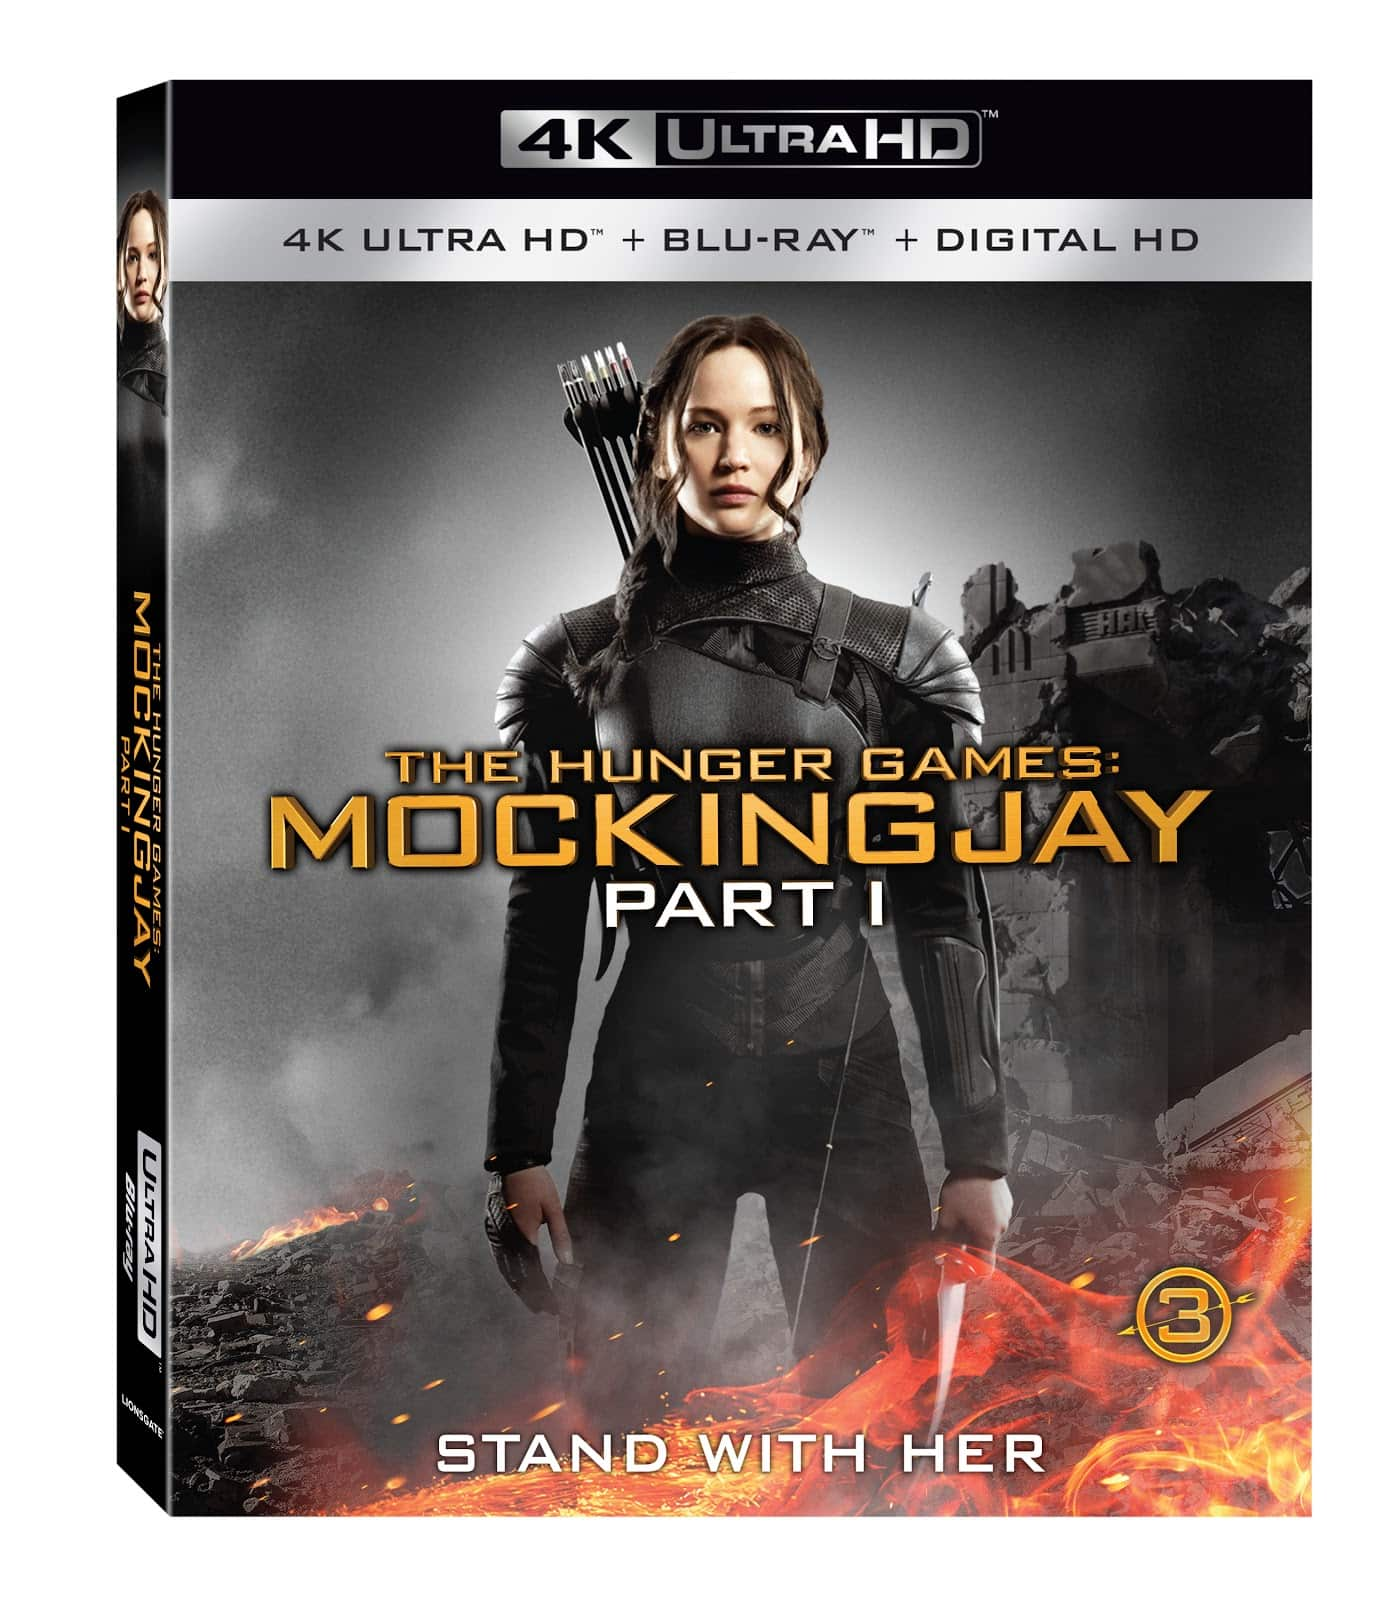 The Hunger Games Mockingjay Part 1 2014 4K 2160P Ultra HDR